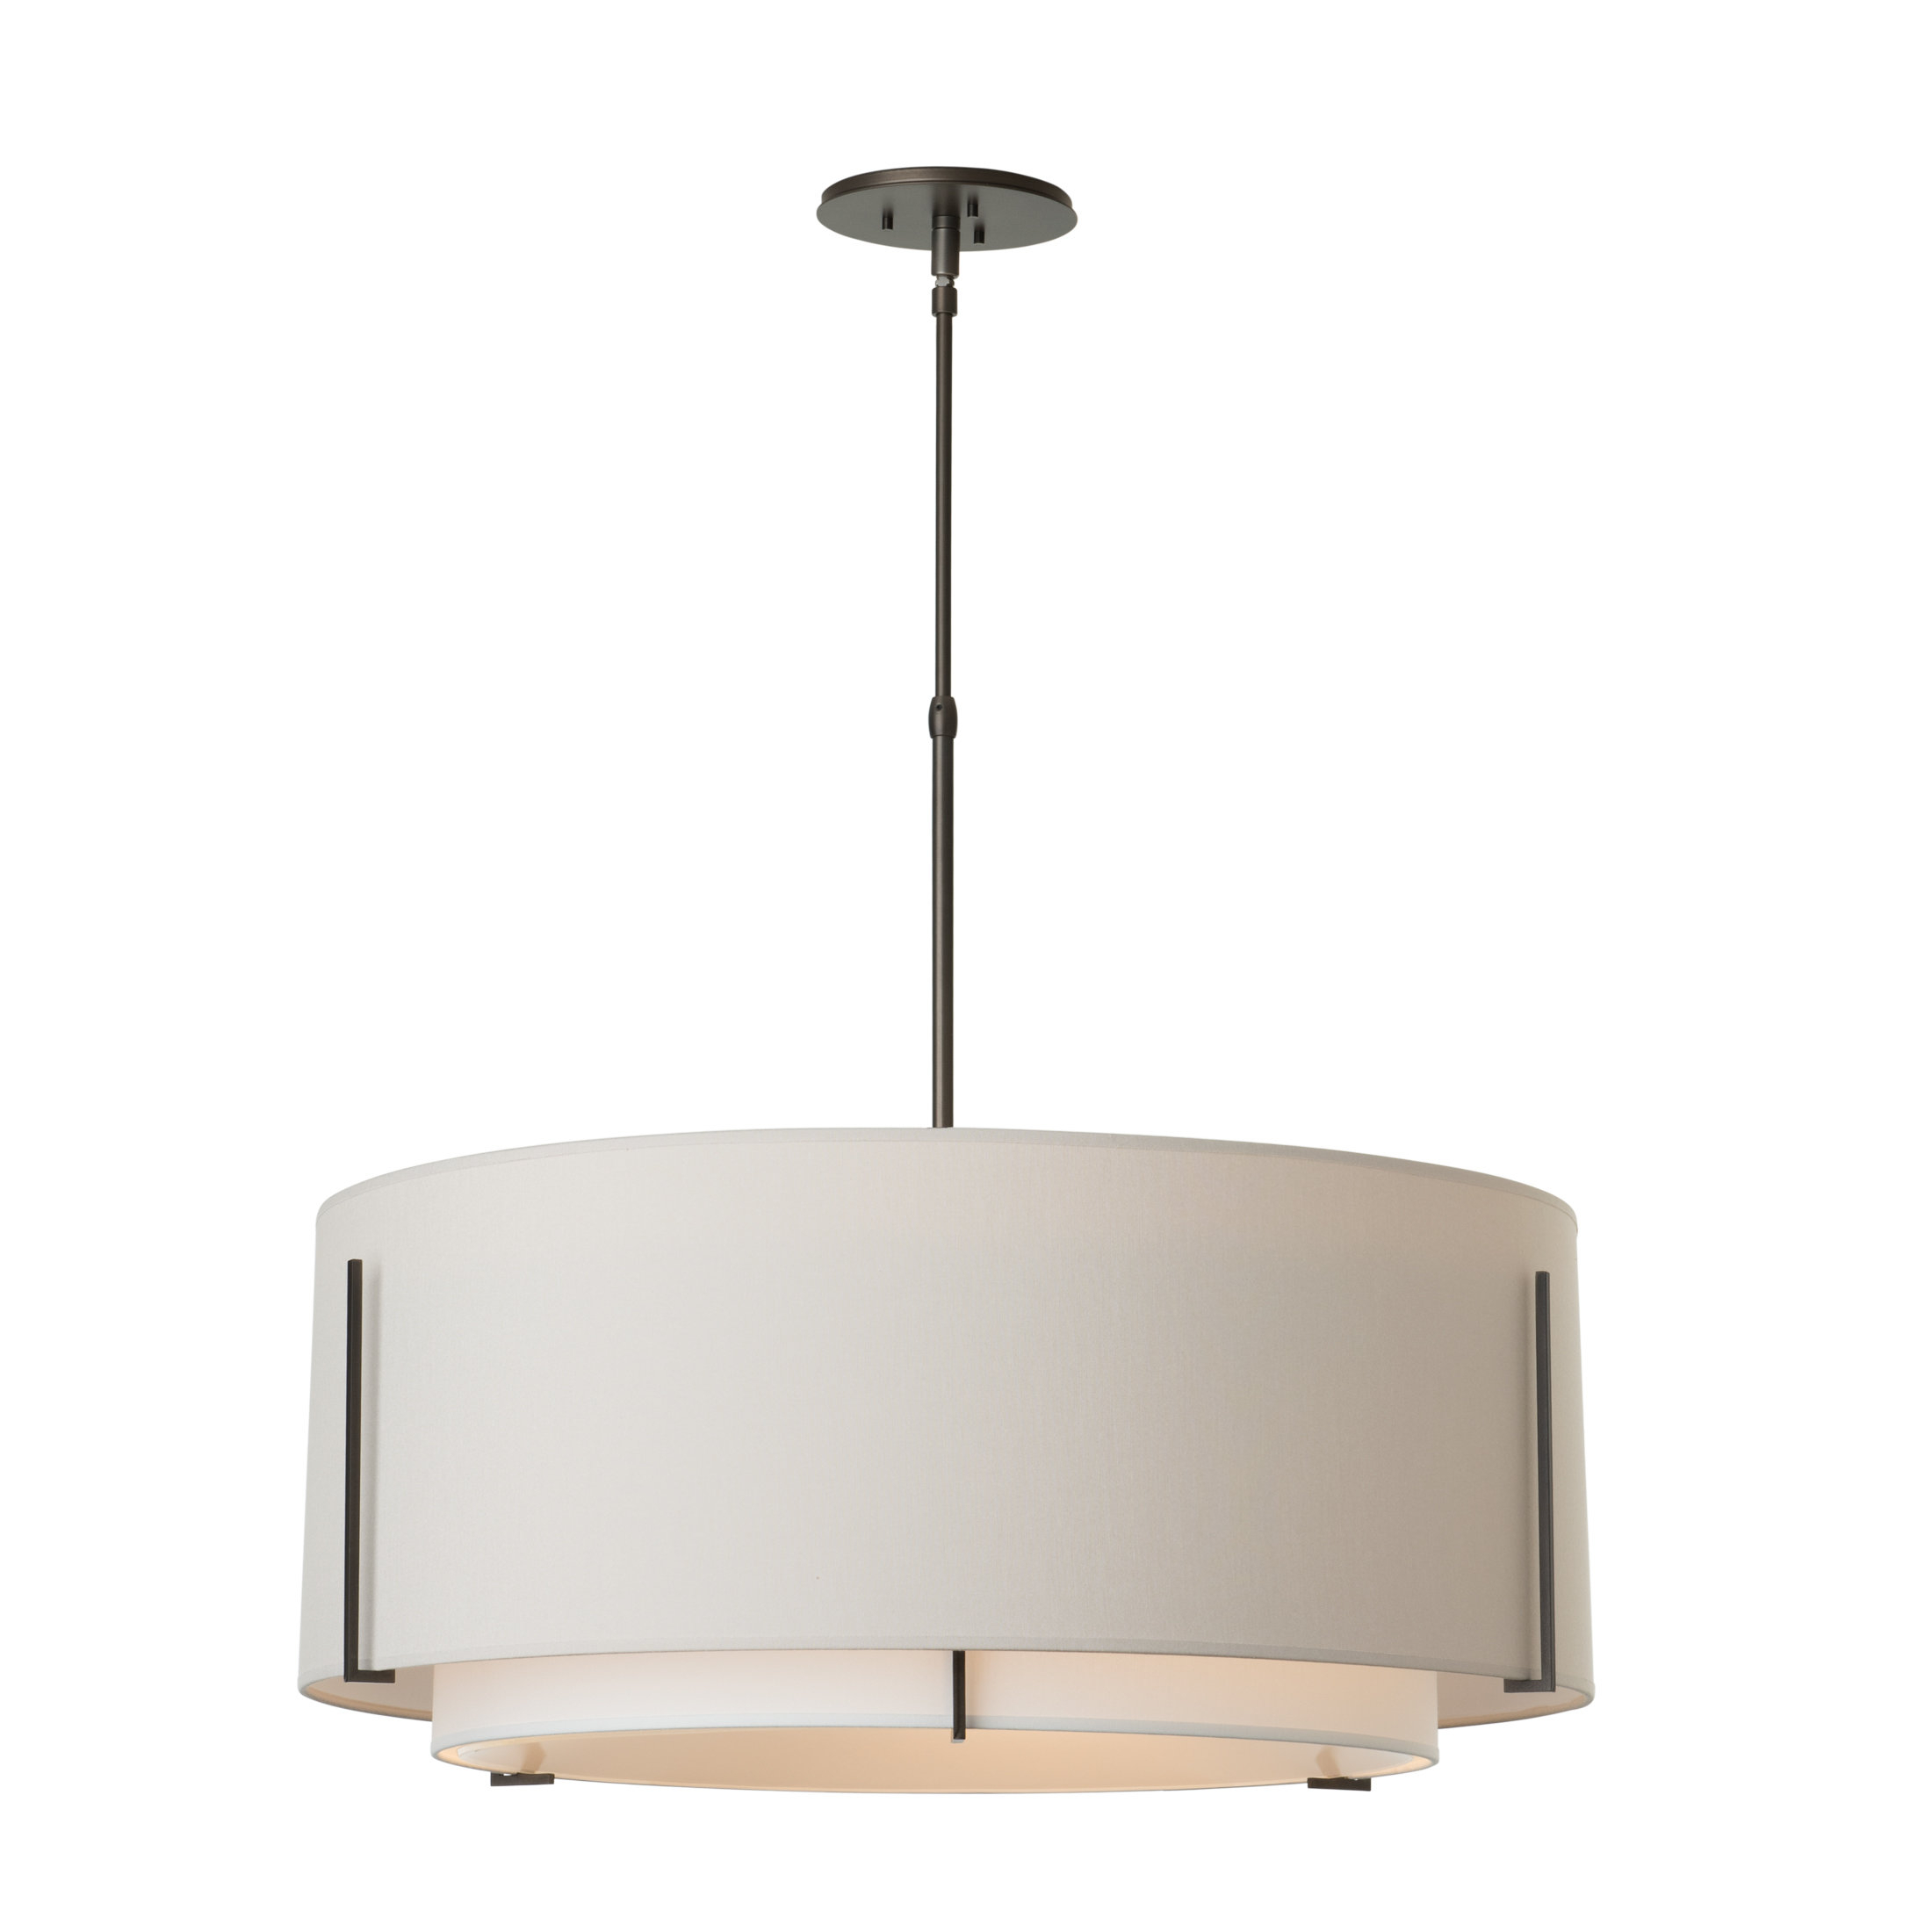 Wayfair With Most Recent Burslem 3 Light Single Drum Pendants (View 17 of 20)